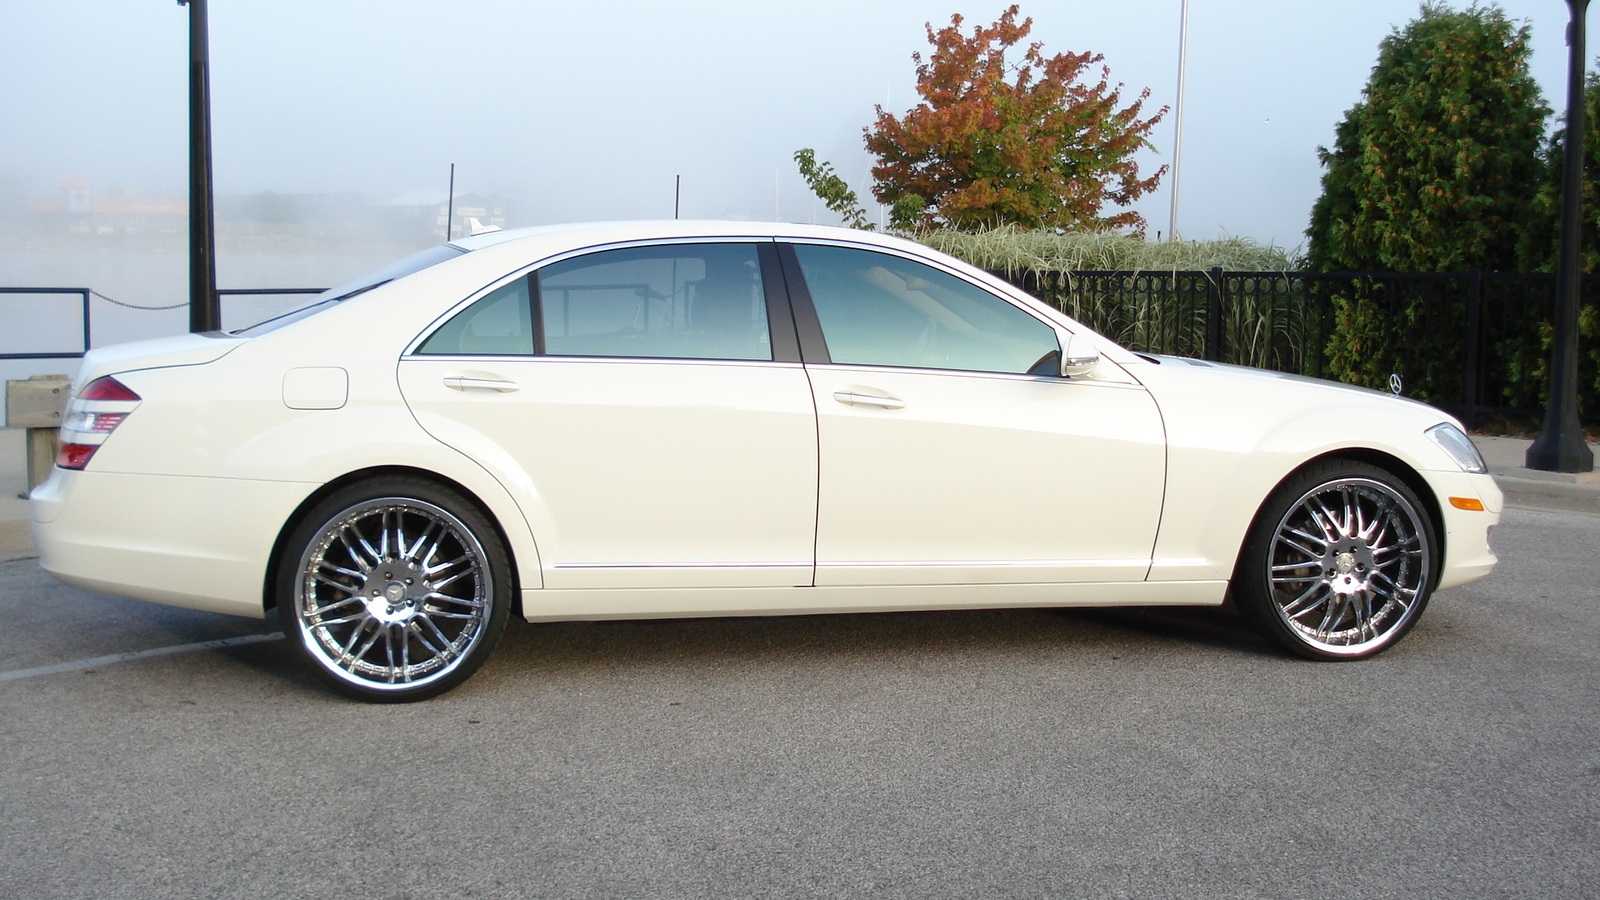 2009 mercedes benz s class pictures cargurus for Mercedes benz s550 4matic price